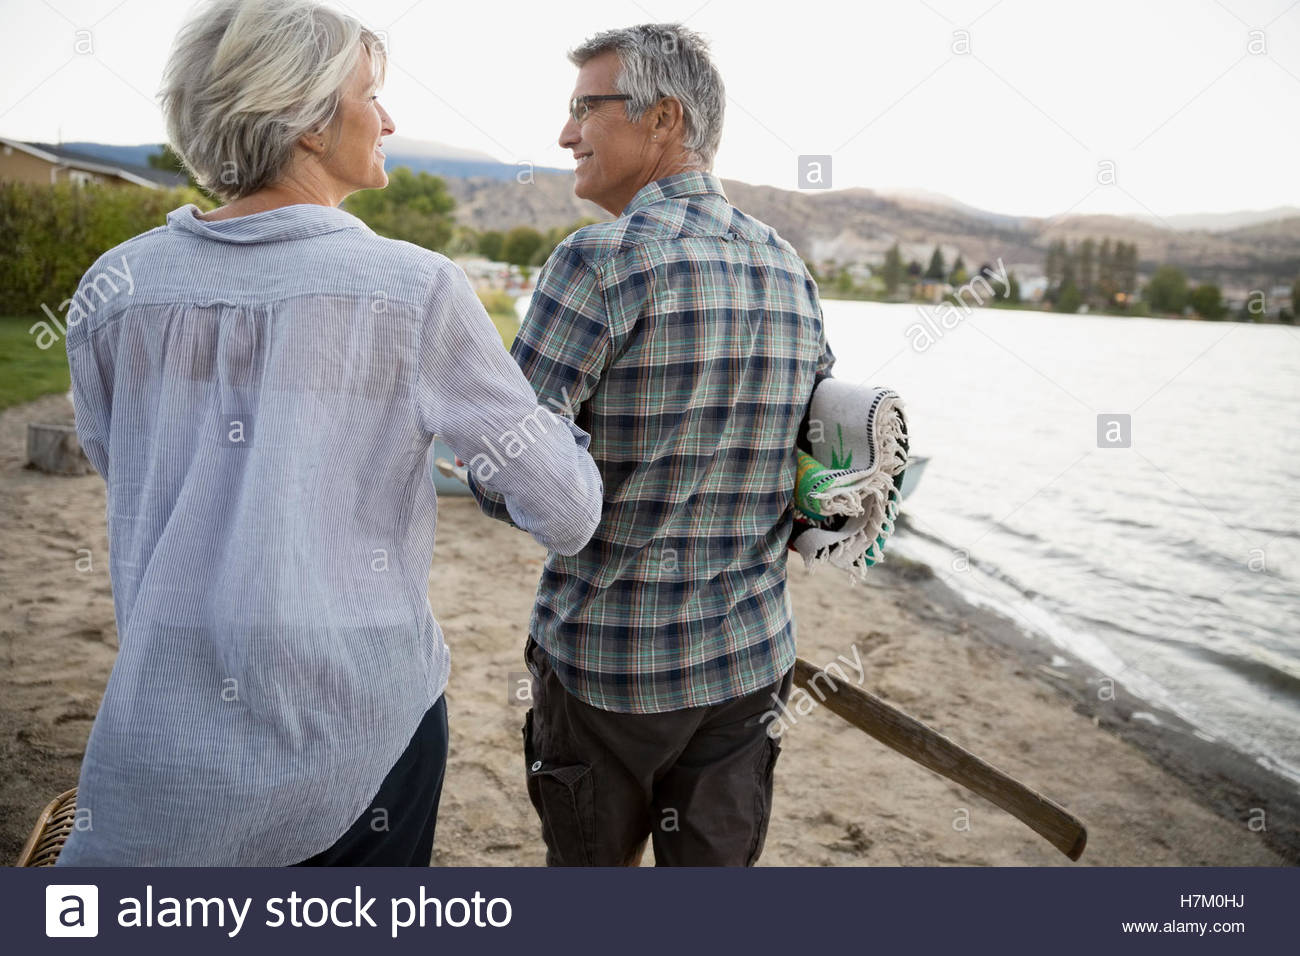 Retired couple walking arm in arm on lake beach - Stock Image